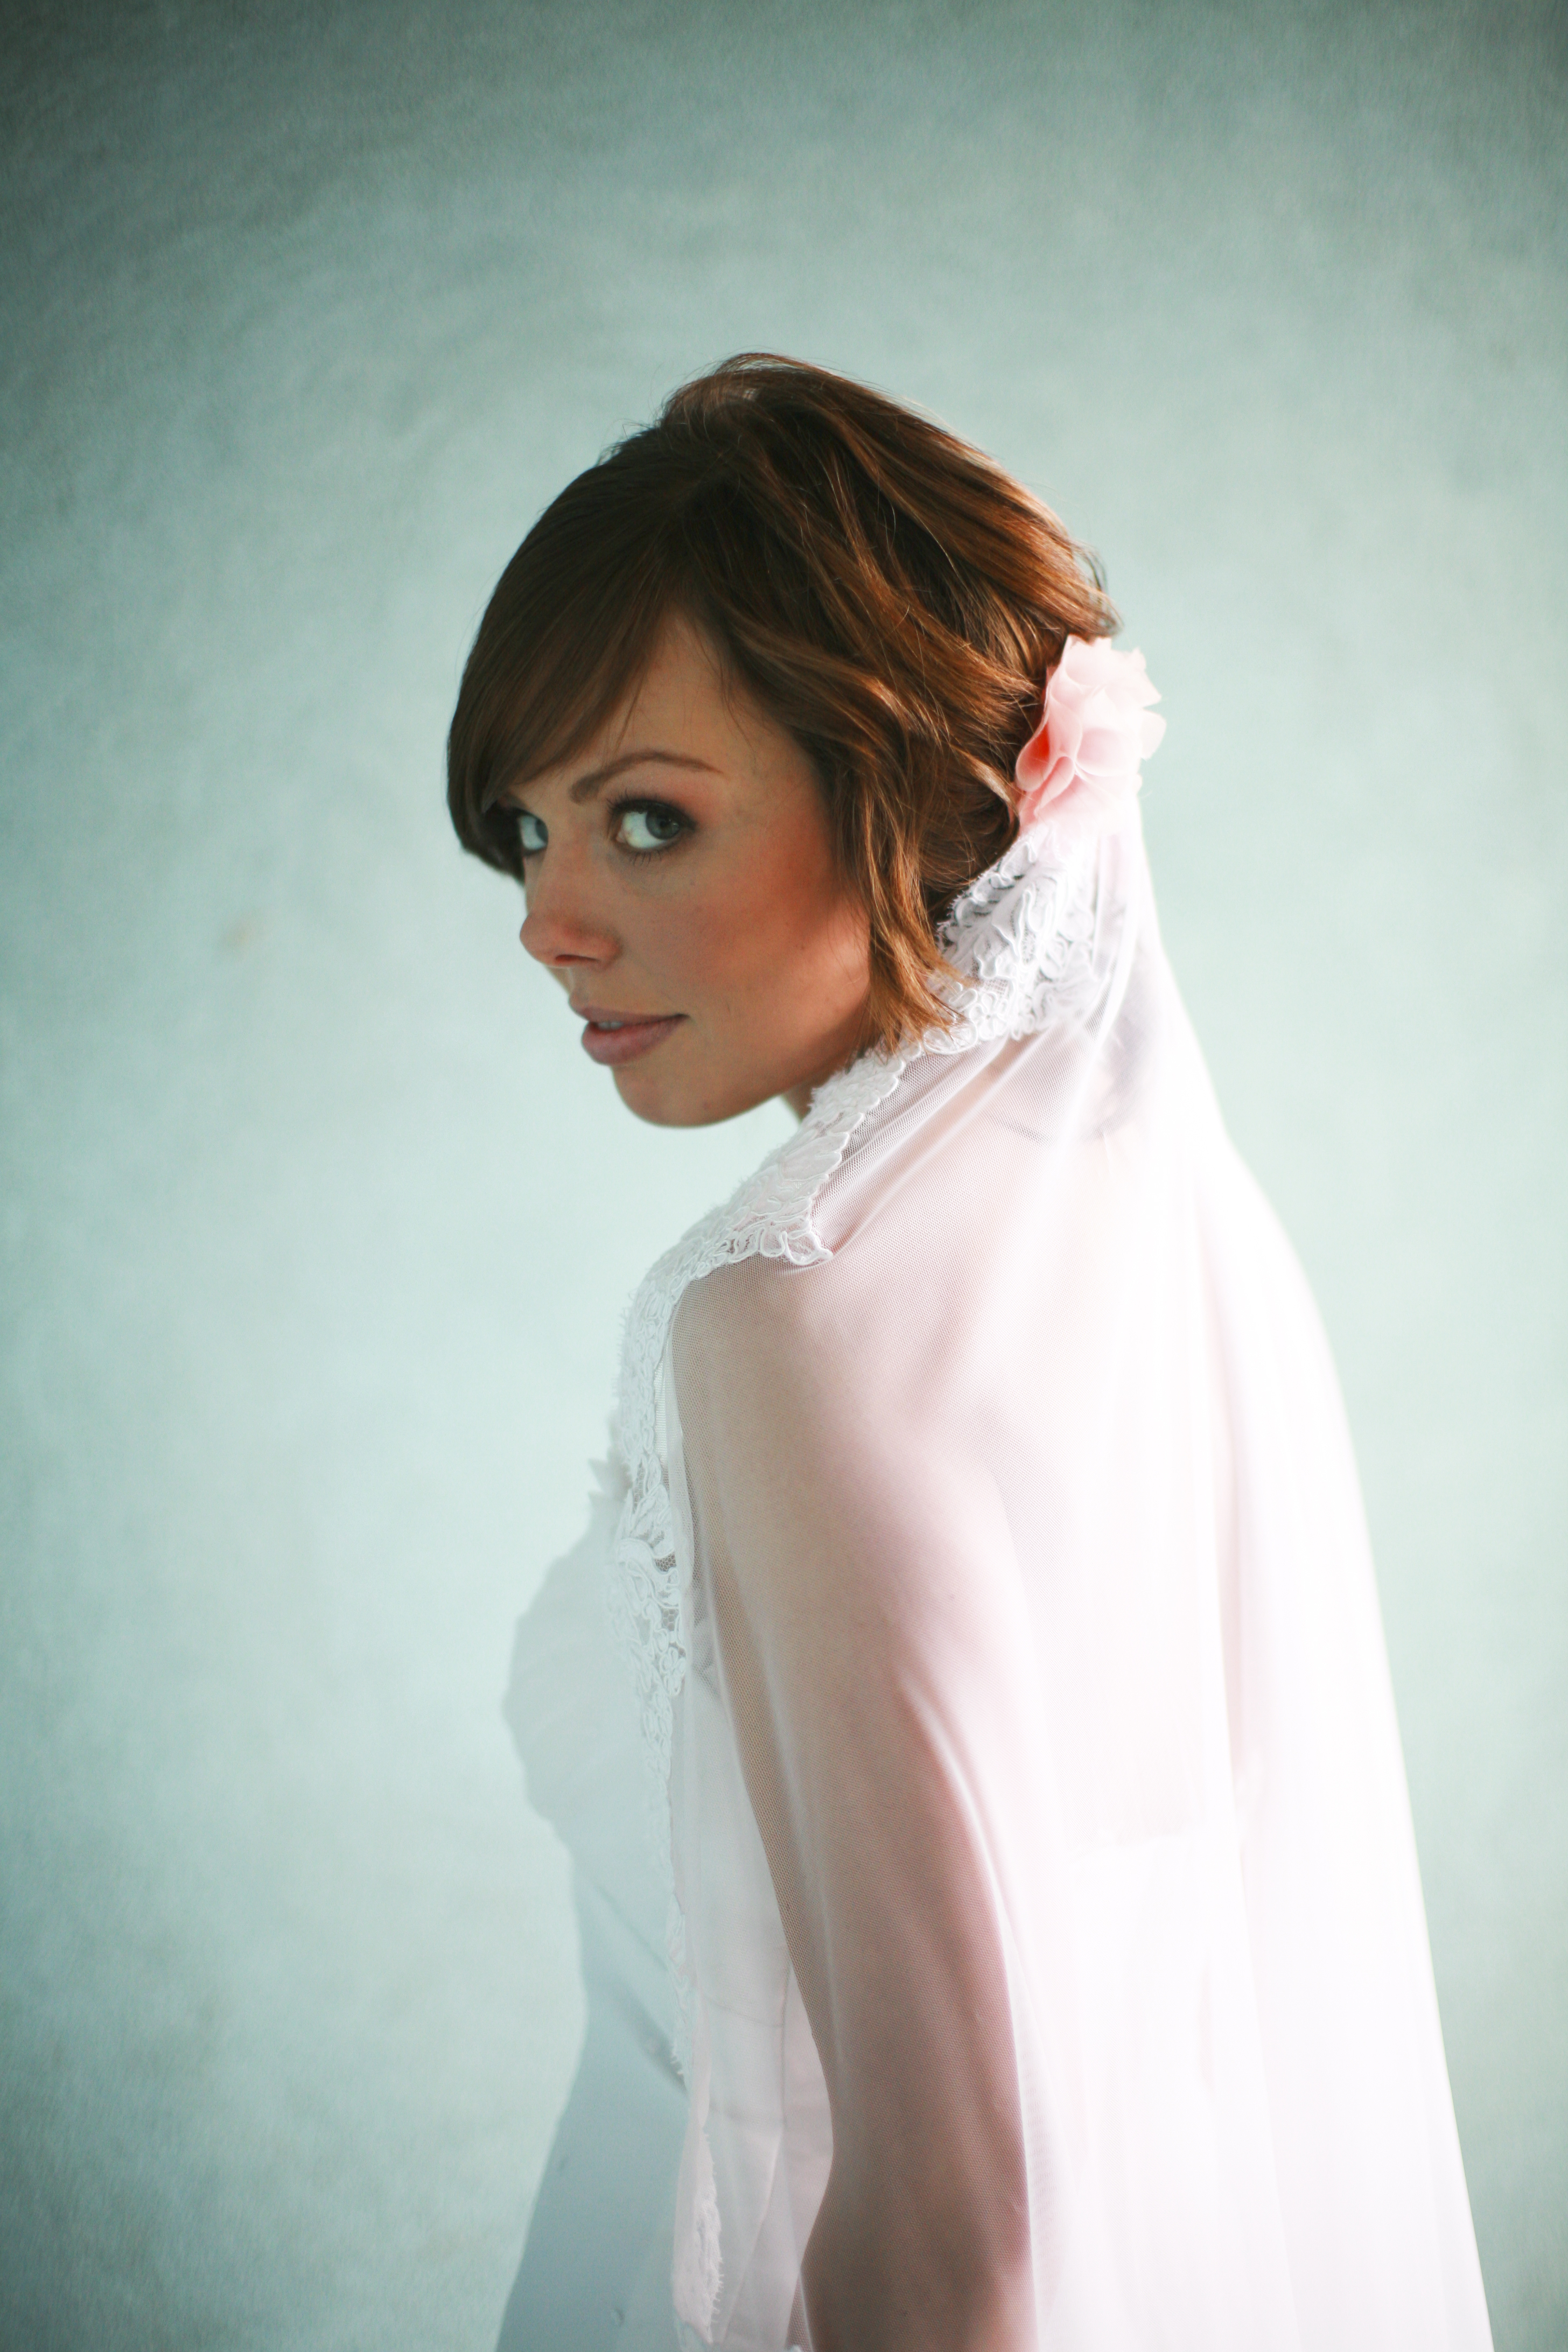 Beauty, DIY, Veils, Fashion, white, Makeup, Bride, Veil, Wedding, Hair, Handmade